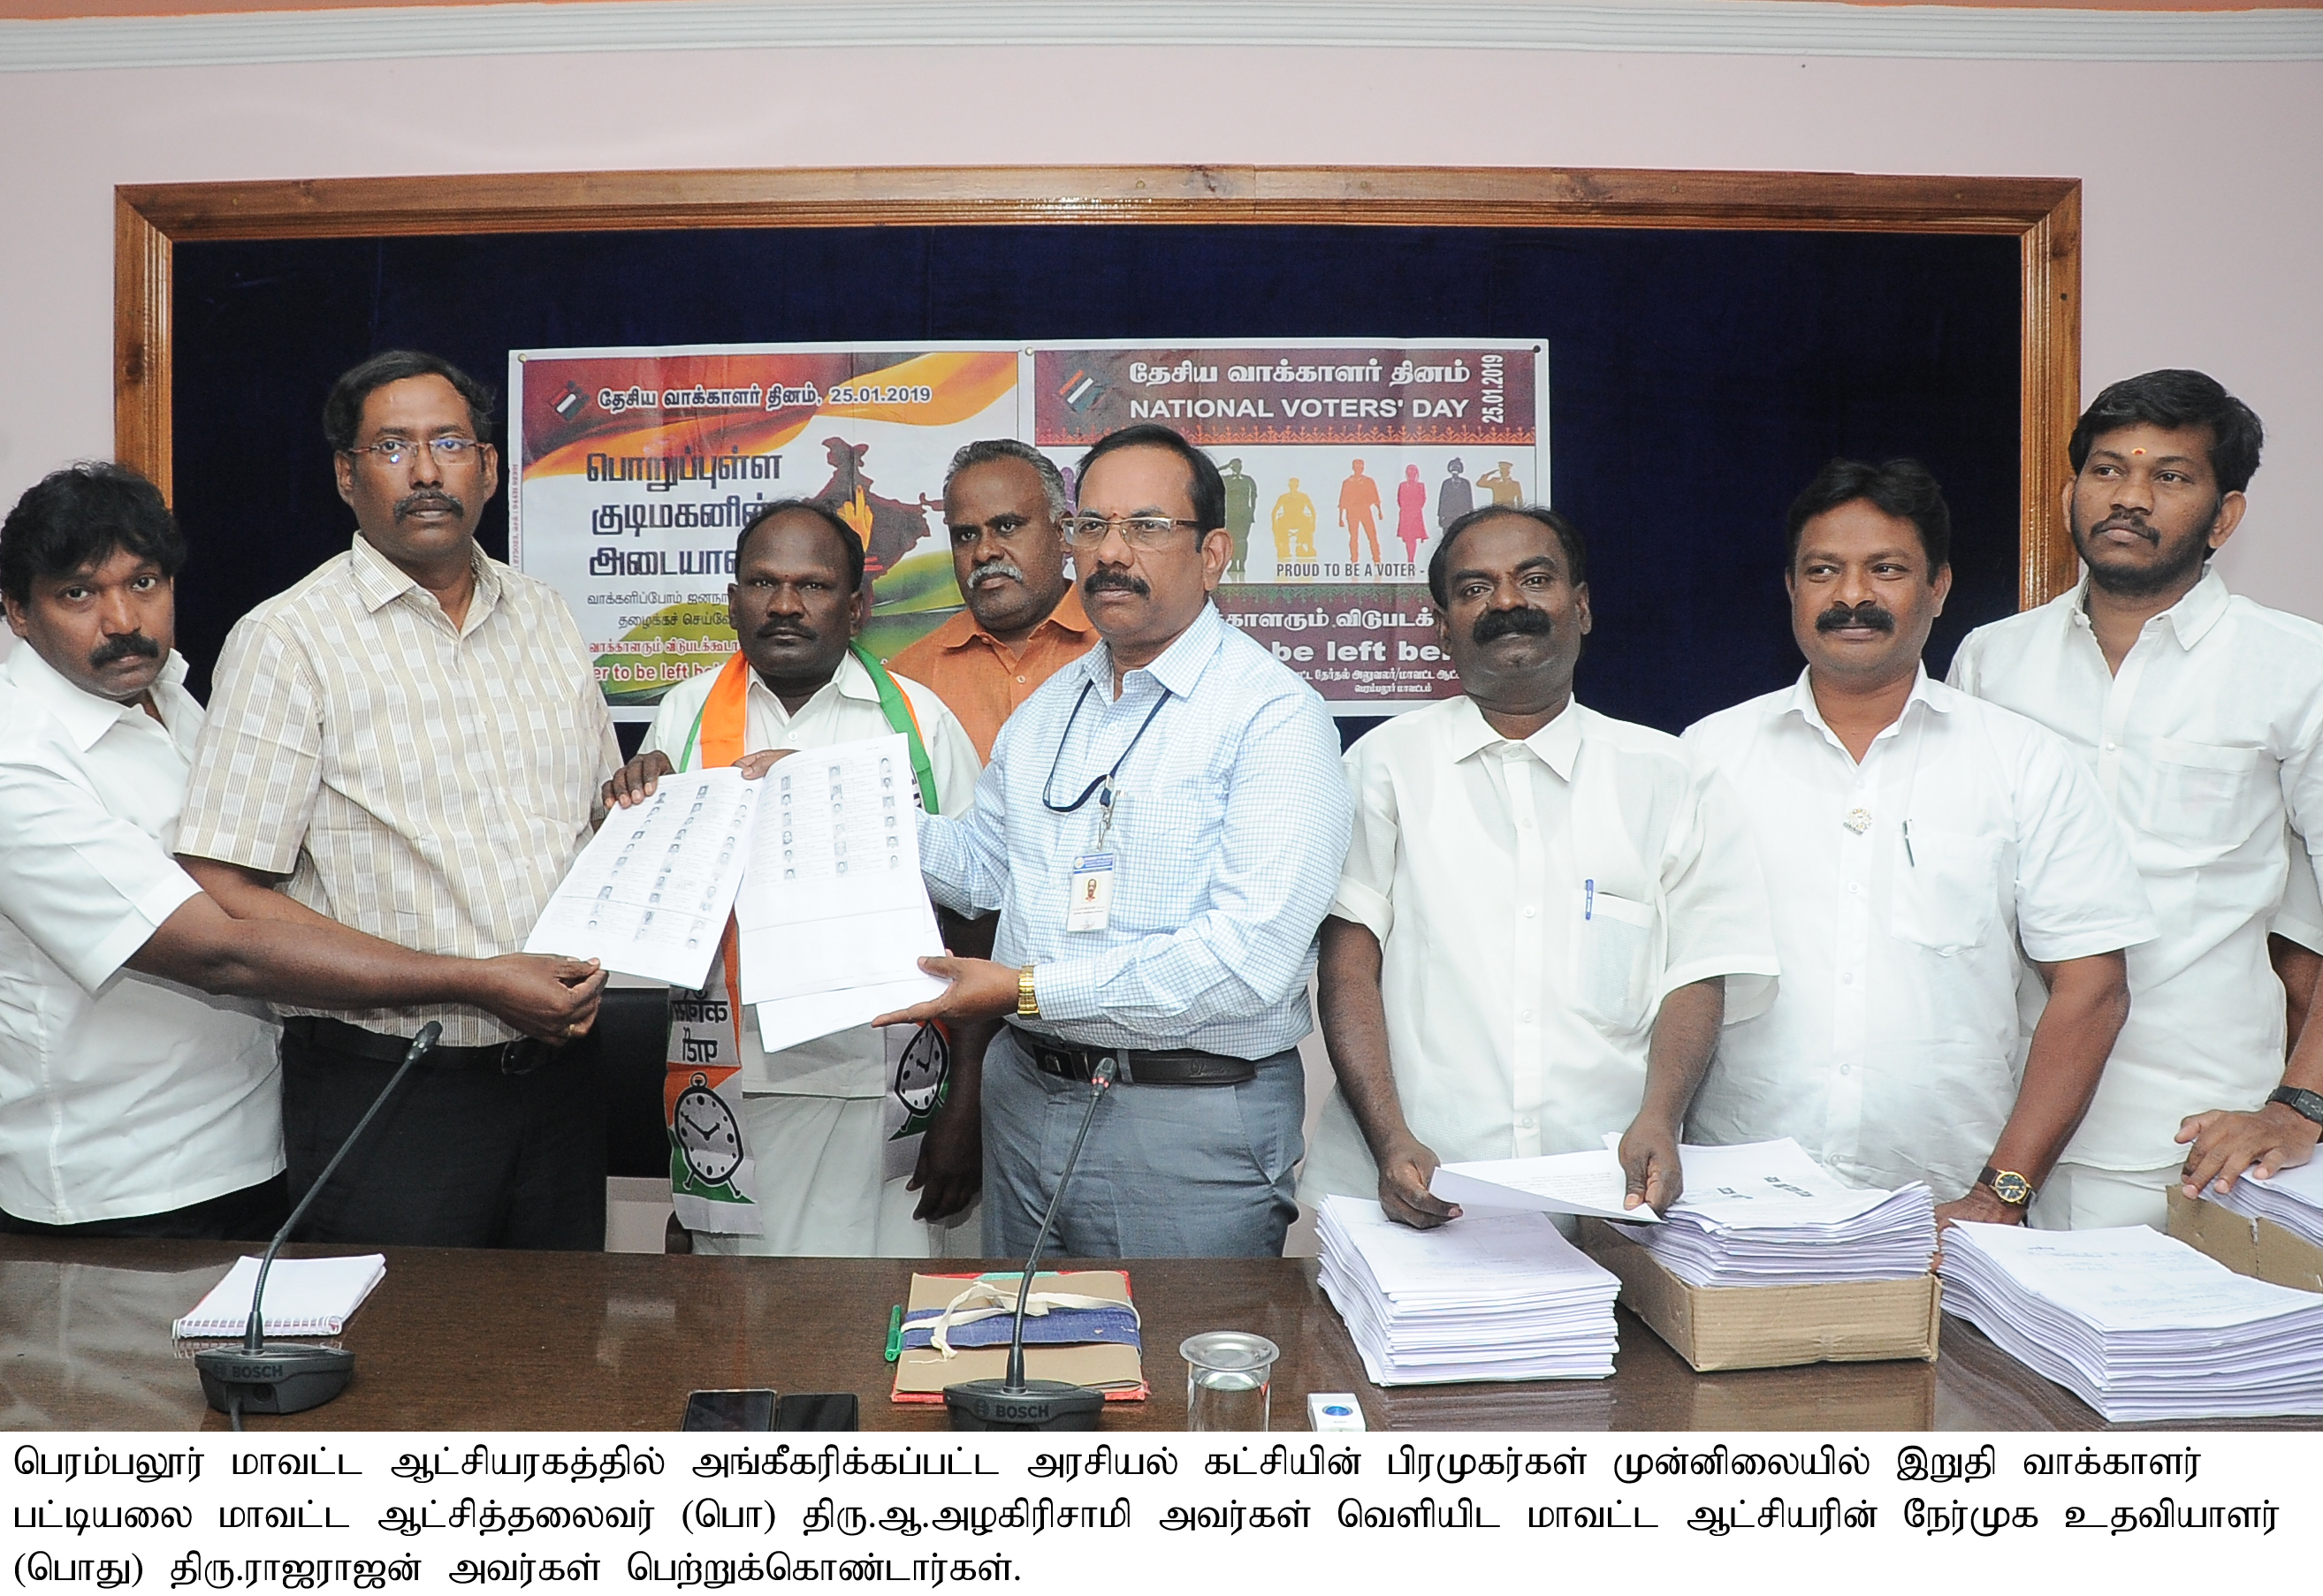 Release of the final Electoral roll.